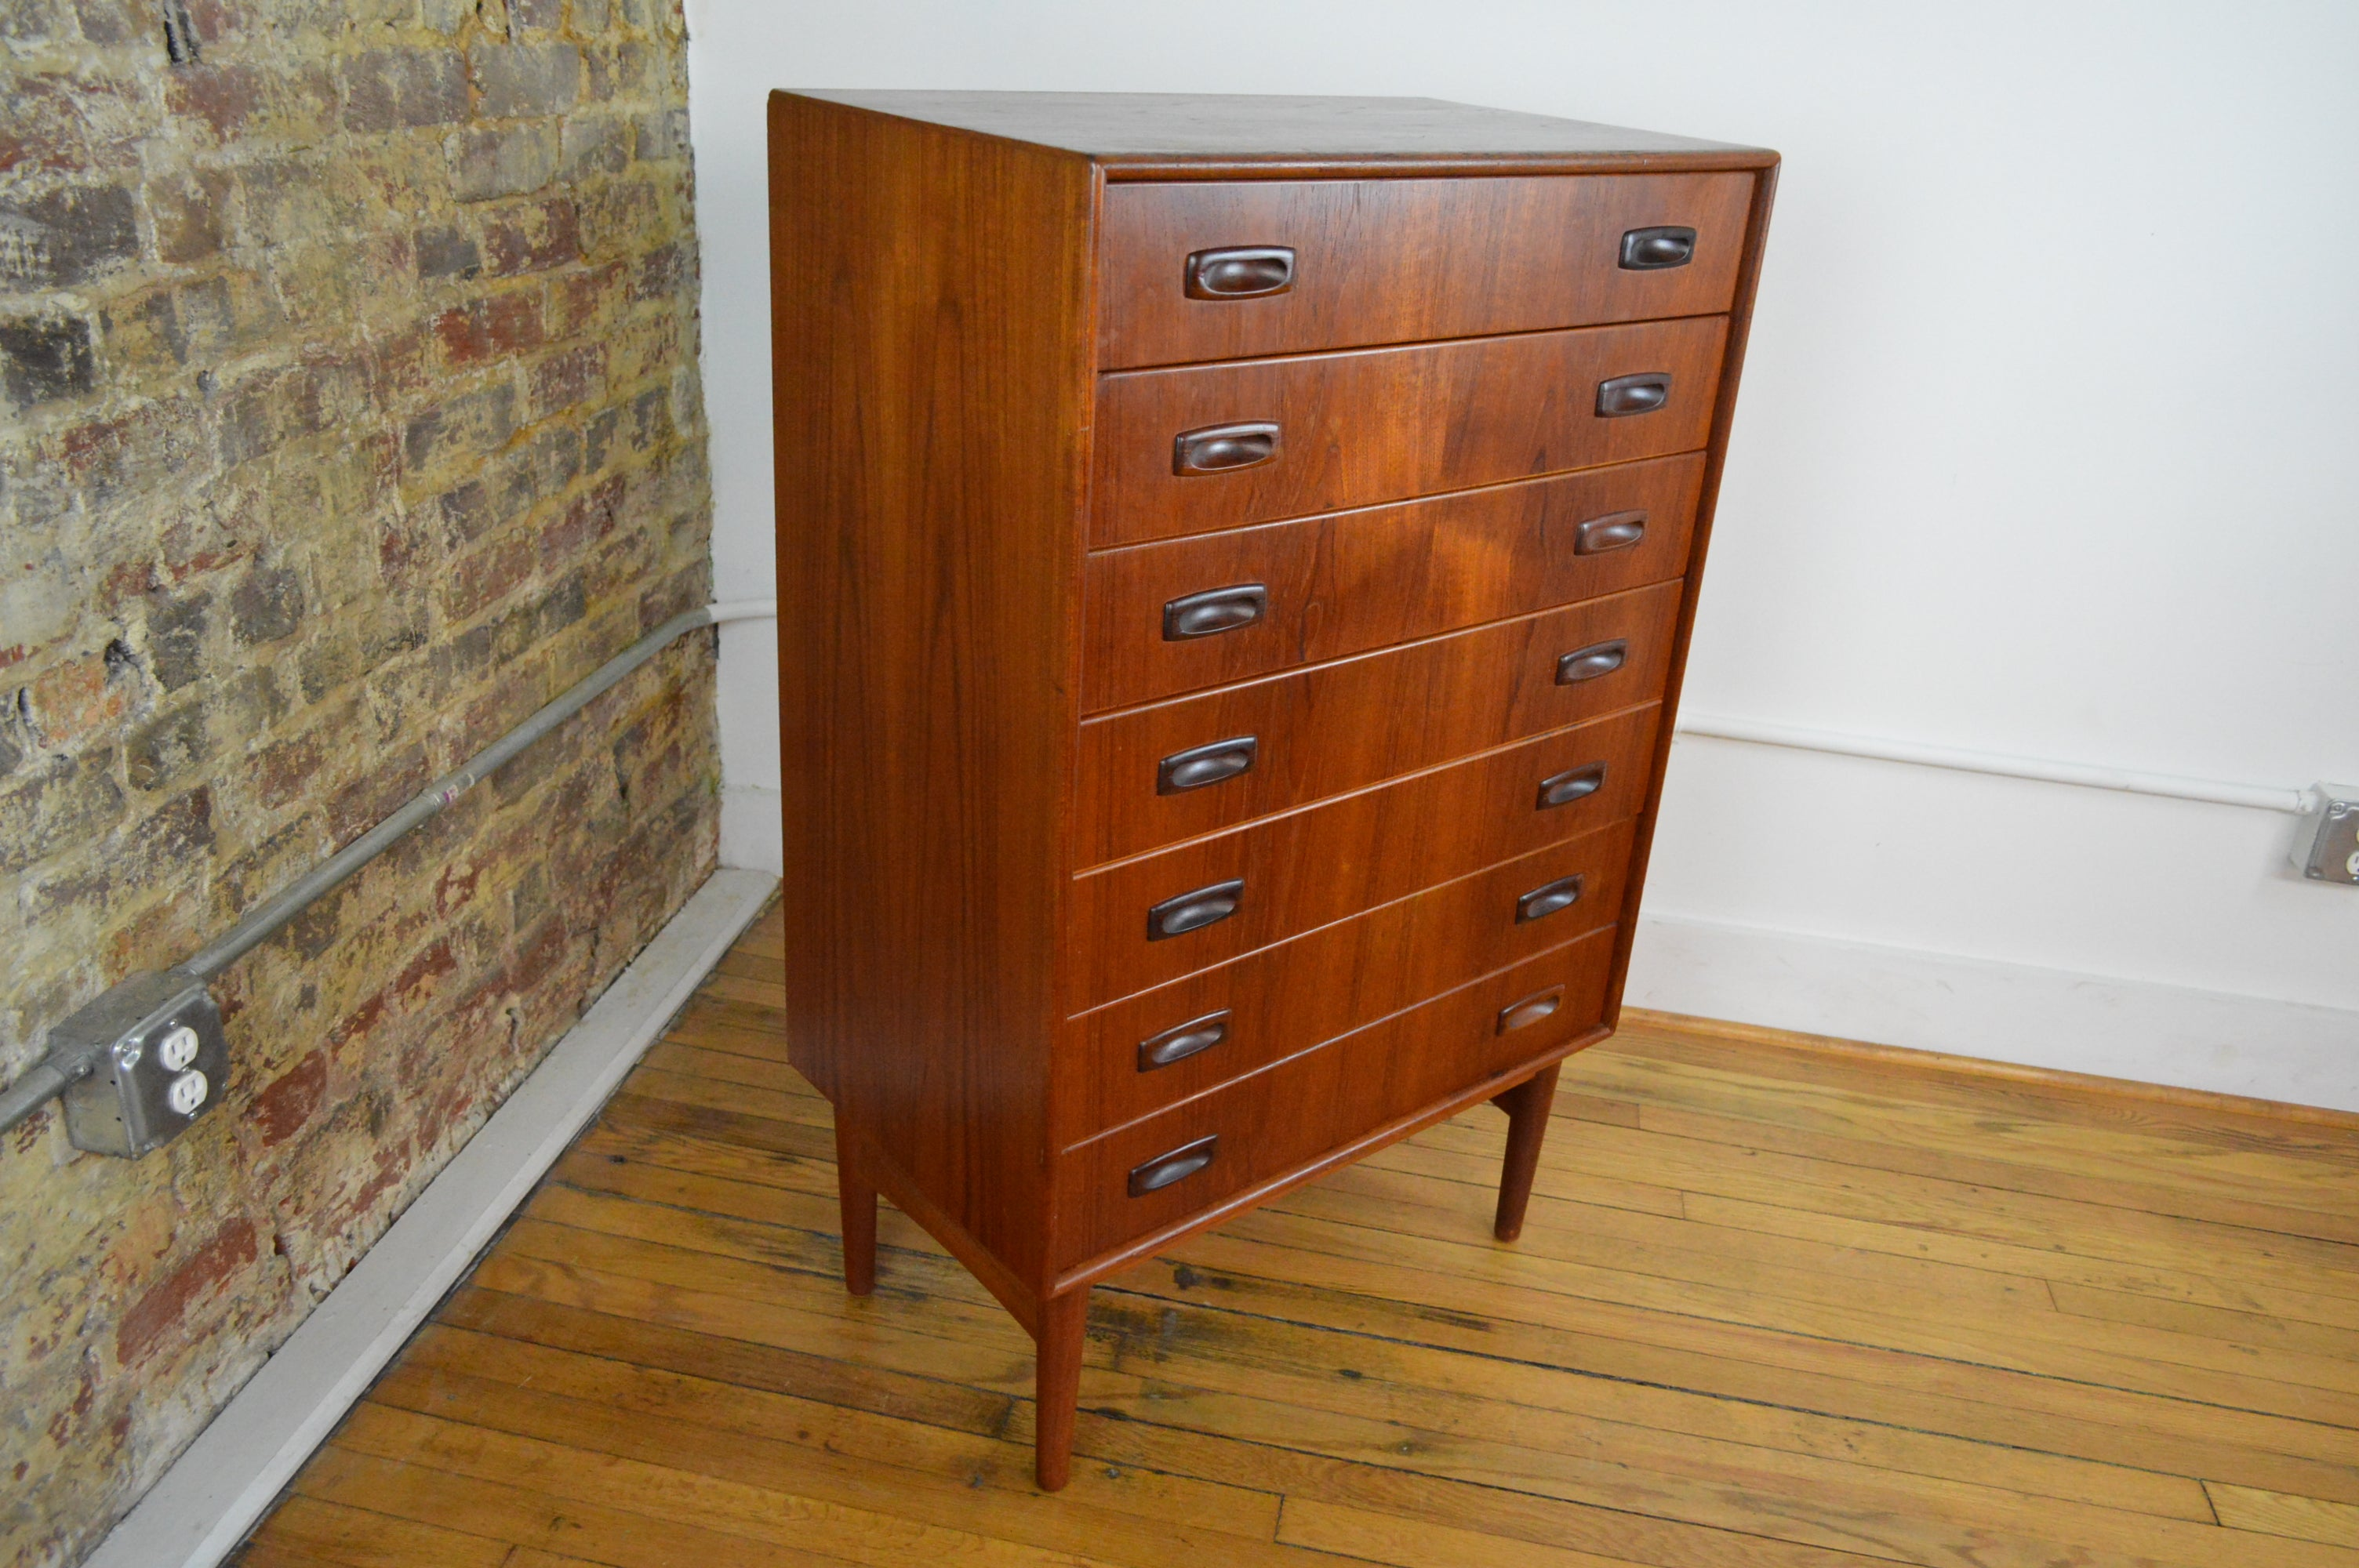 surrey cobham category siena furniture six chest no cupboard drawer nr product drawers of bedroom london